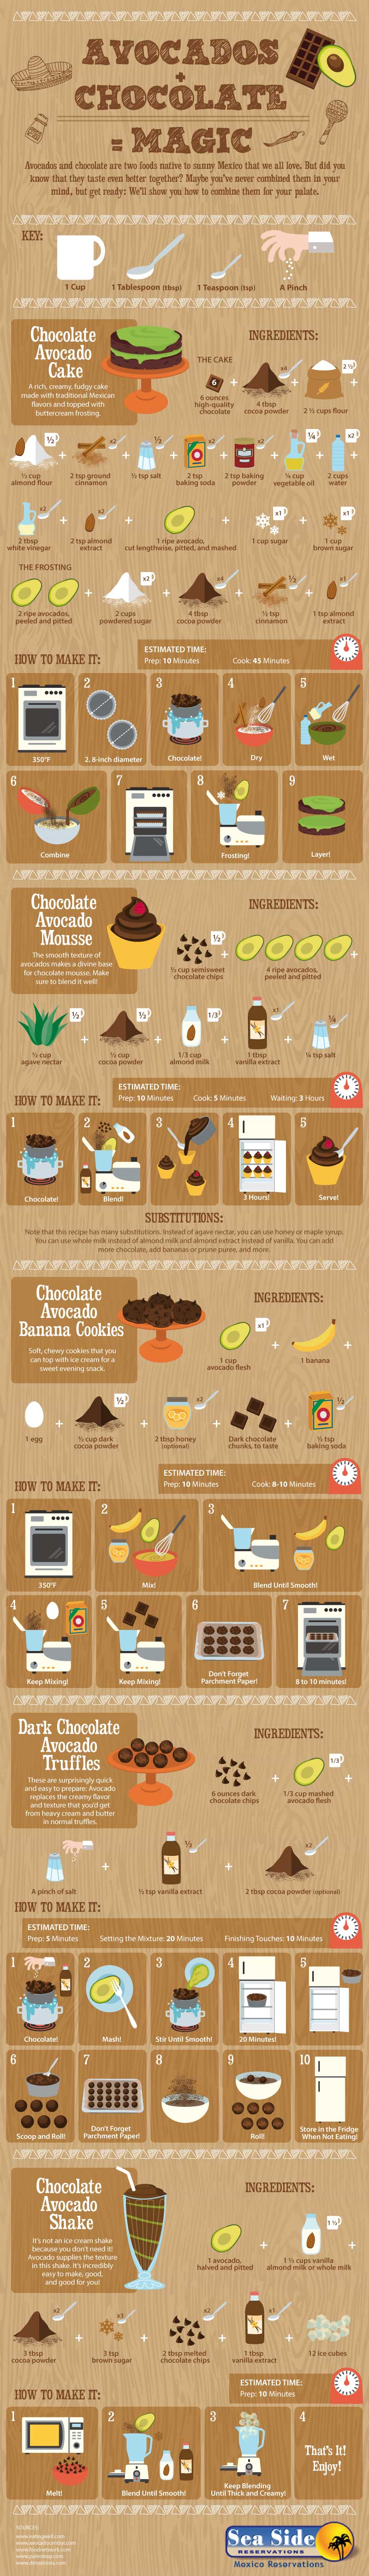 Avocados + Chocolate = Magic!